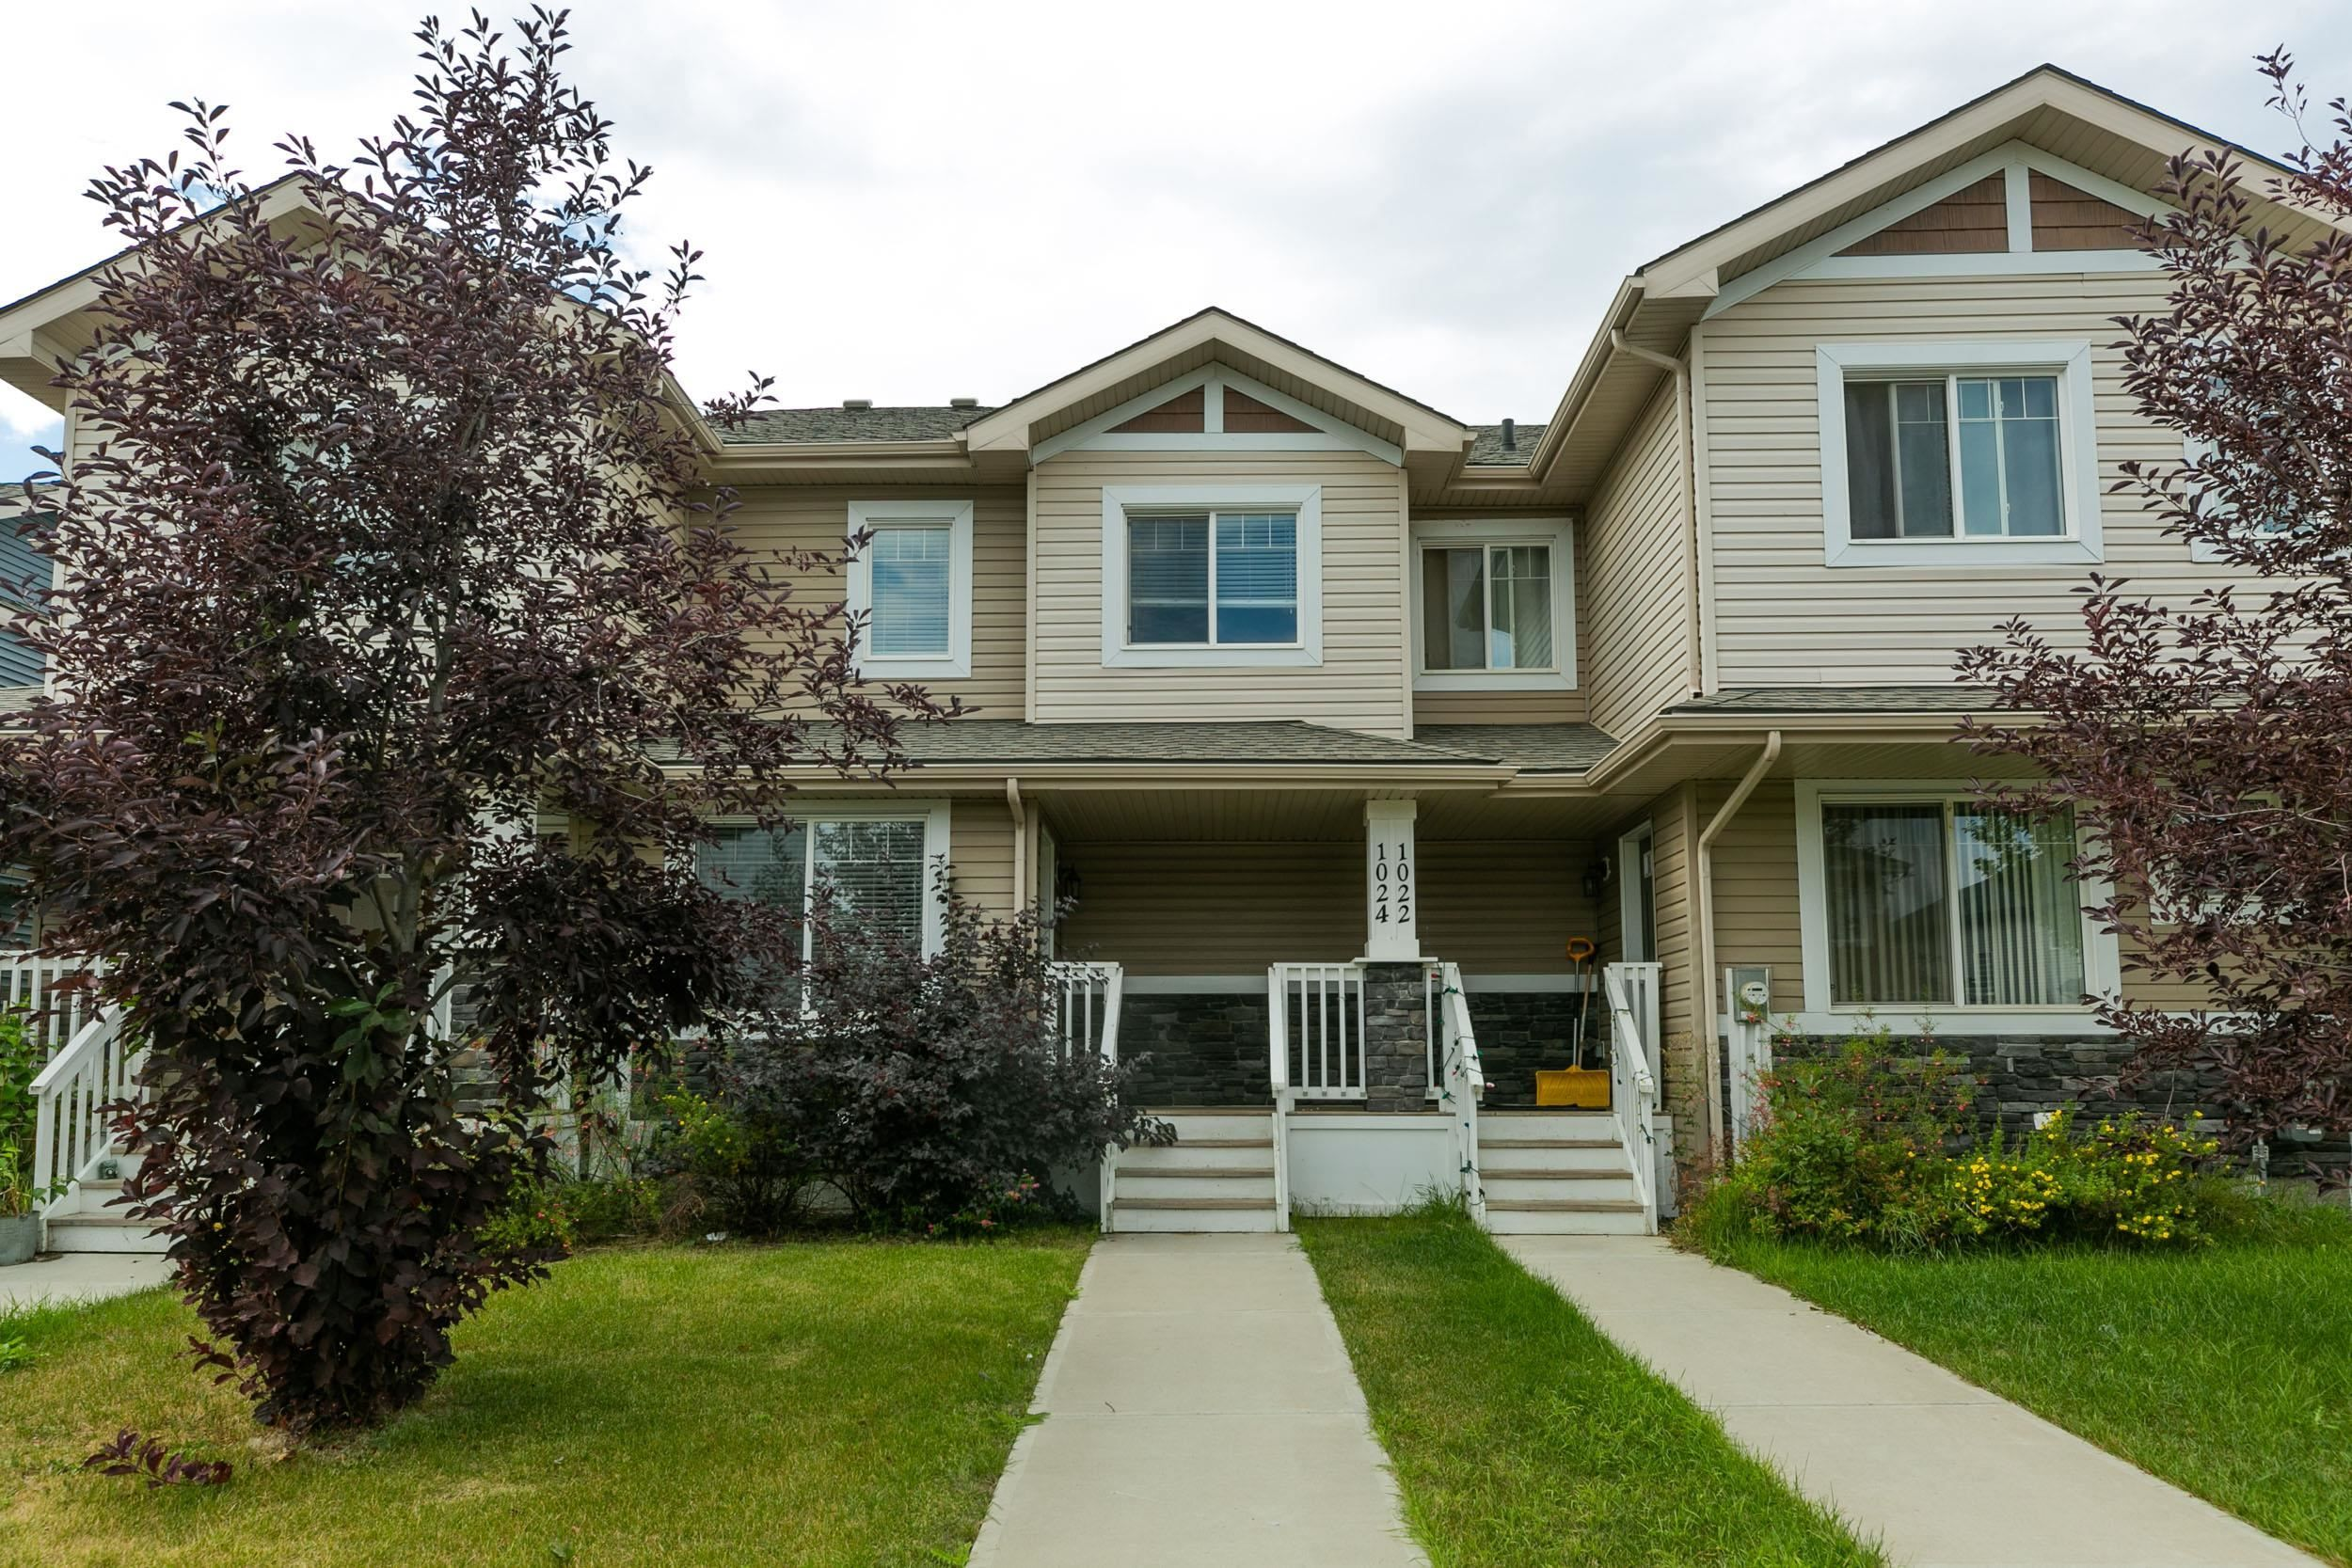 Main Photo: 1024 175 Street in Edmonton: Zone 56 Attached Home for sale : MLS®# E4260648